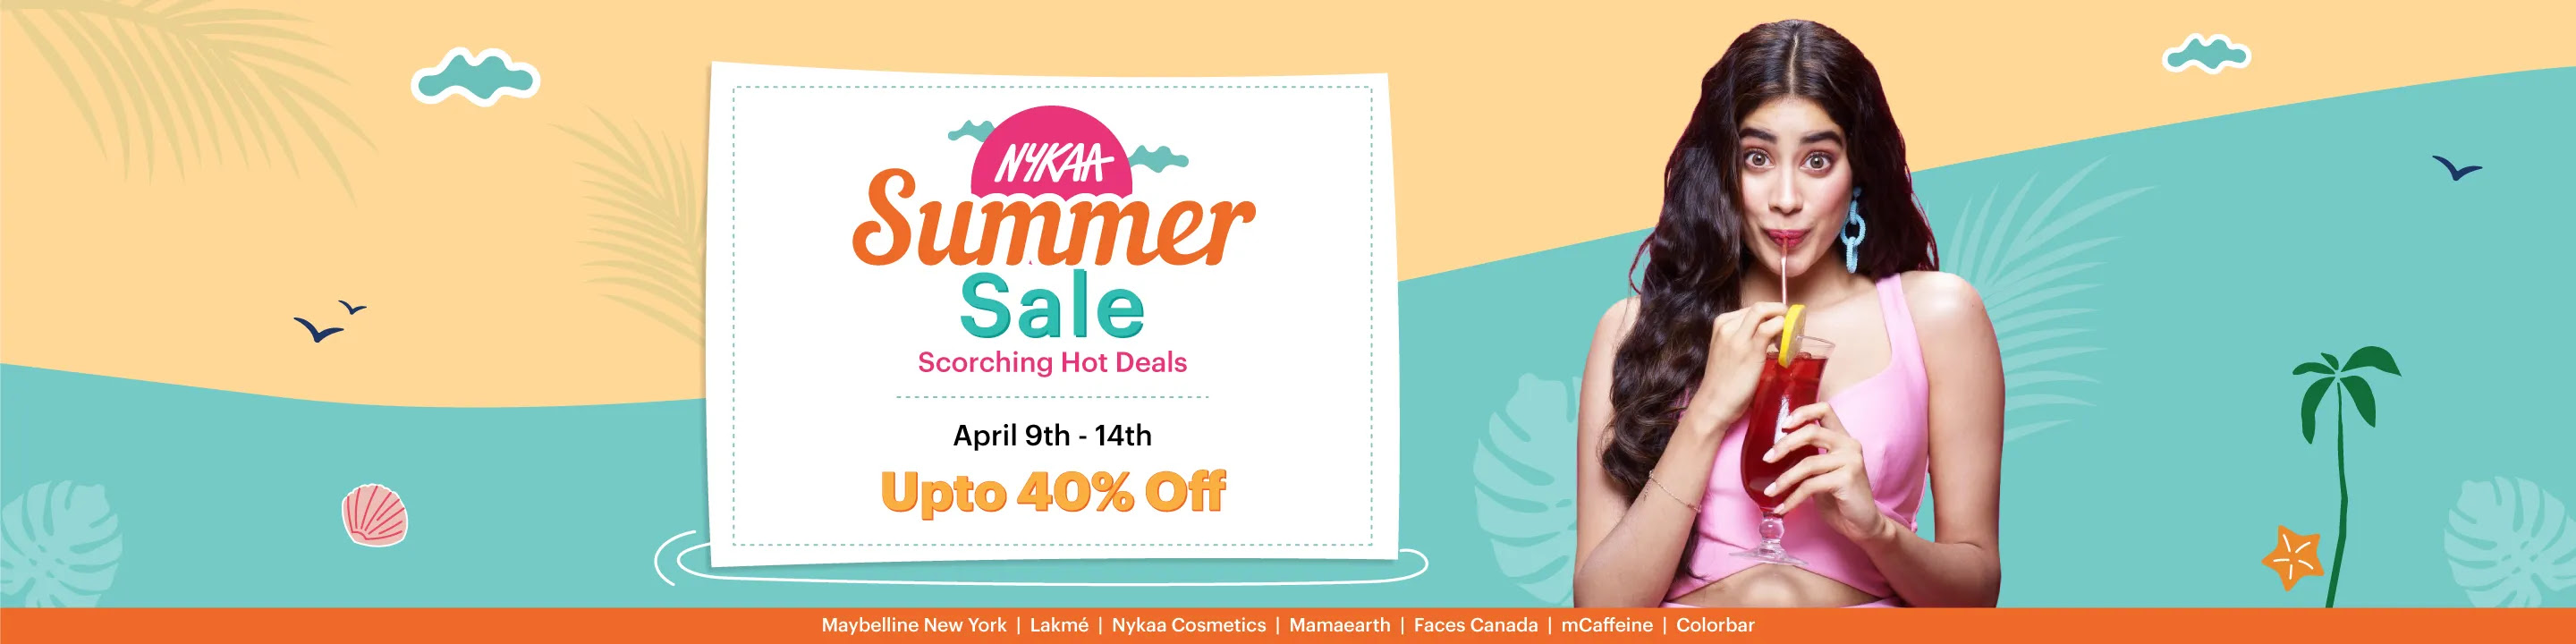 Summer Sale: Summer Offer Upto 40% Off on Cosmetics & Beauty Products | Nykaa